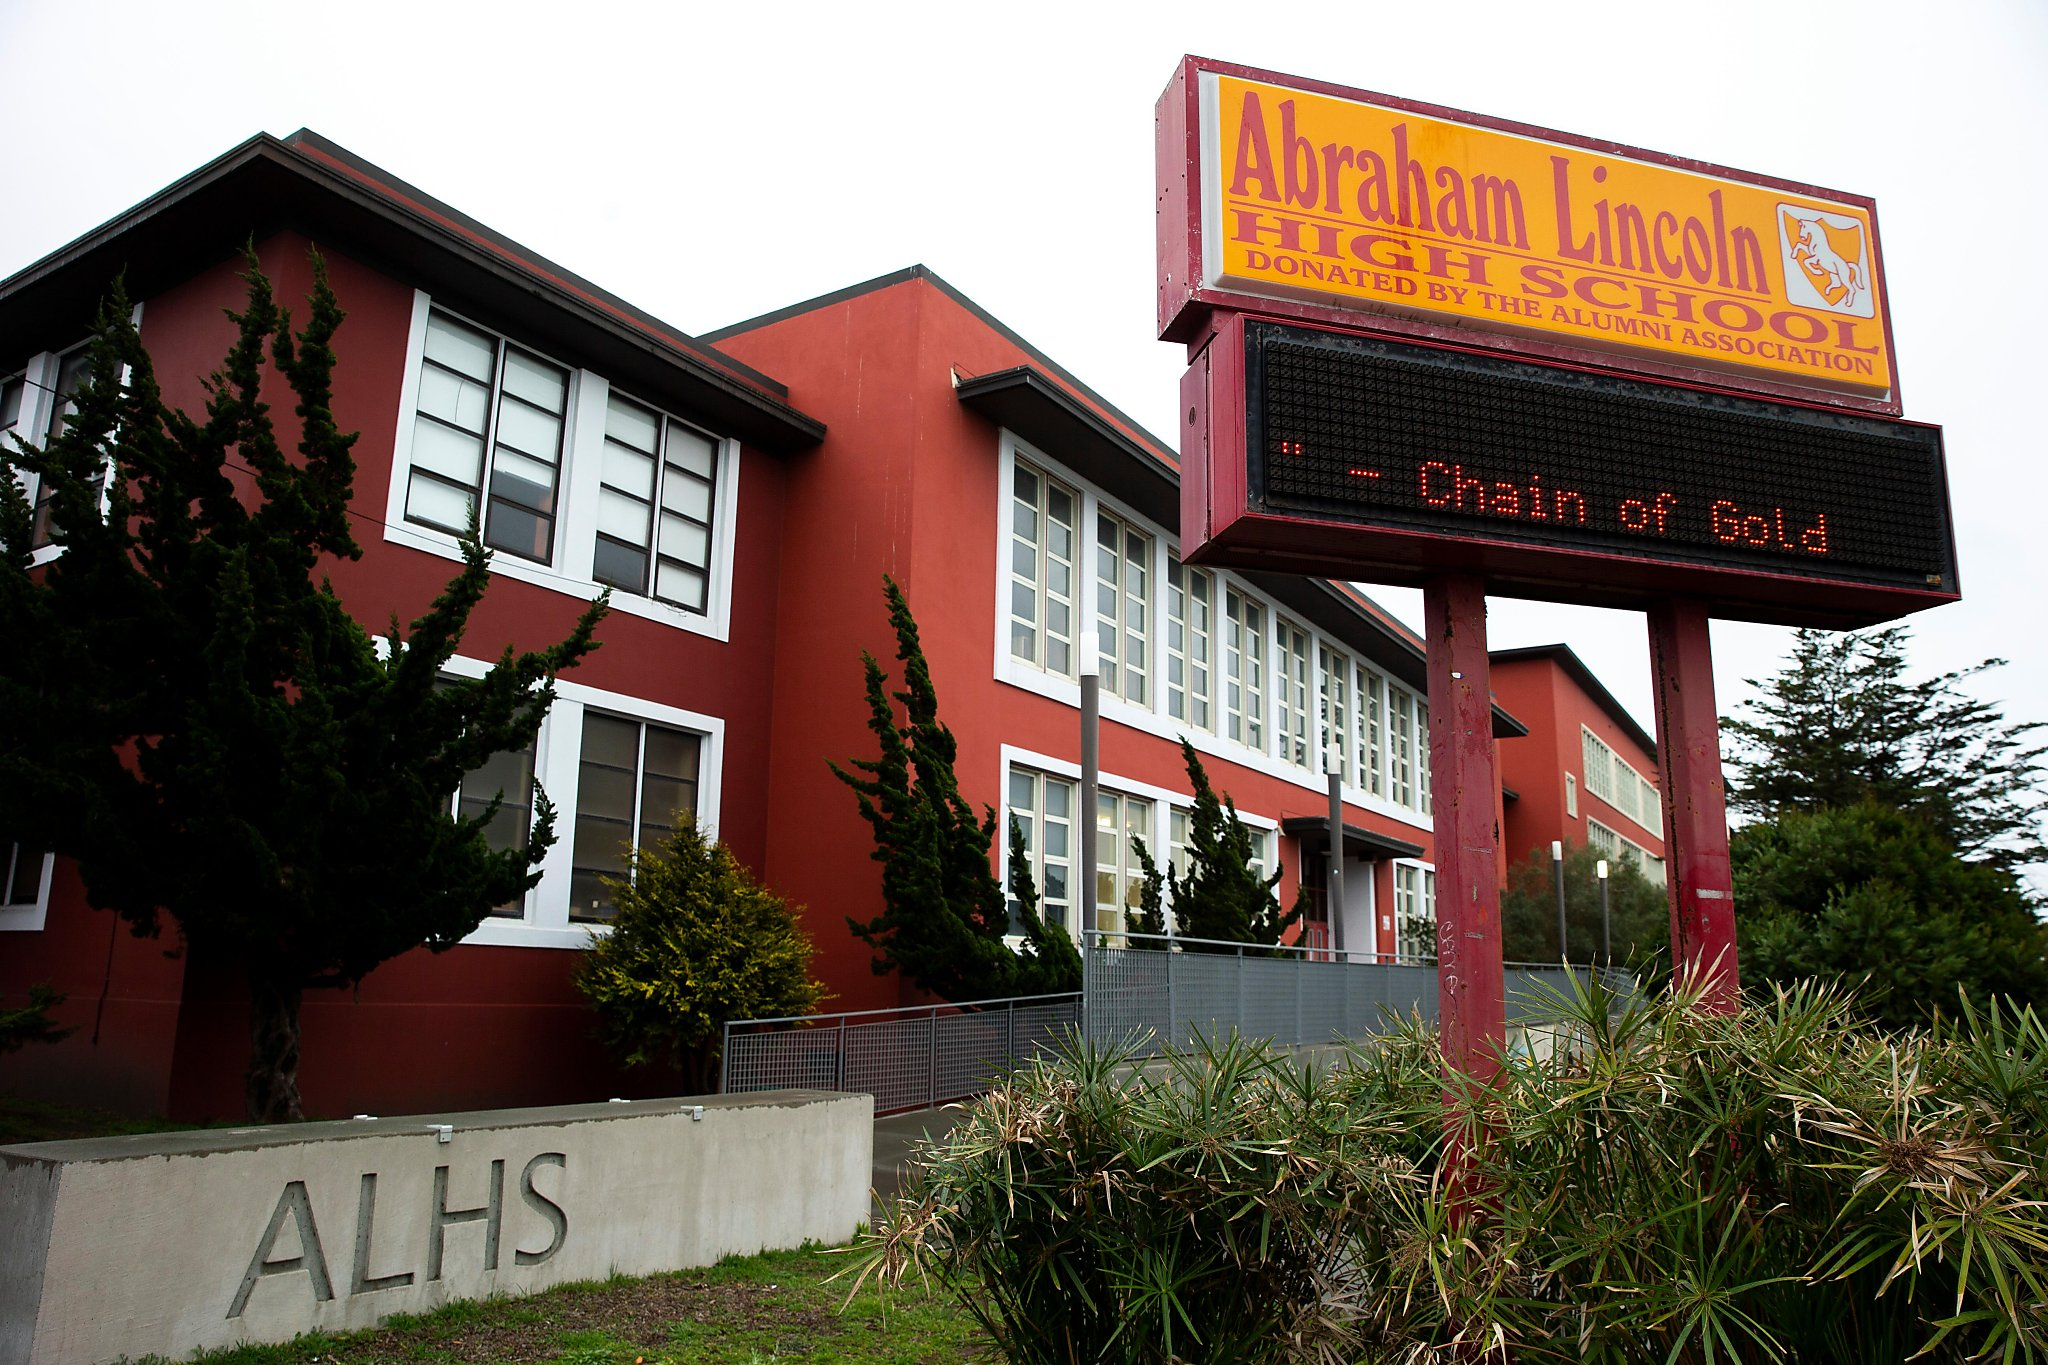 S.F. schools renaming fight isn't over. Plaintiffs demand lawsuit not be called 'frivolous'